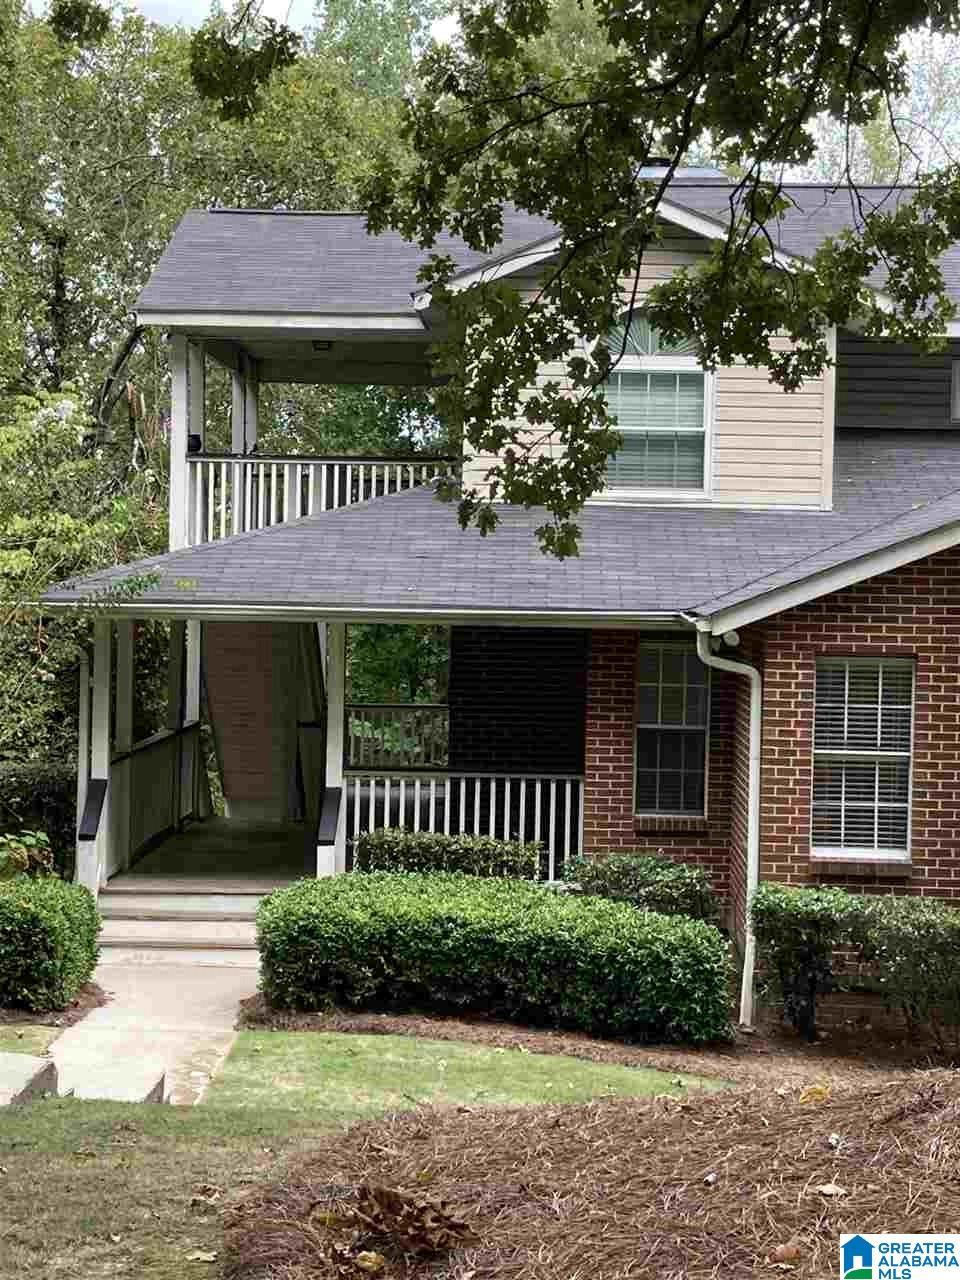 601 MORNING SUN DR, Birmingham, AL 35242 - MLS#: 1273447